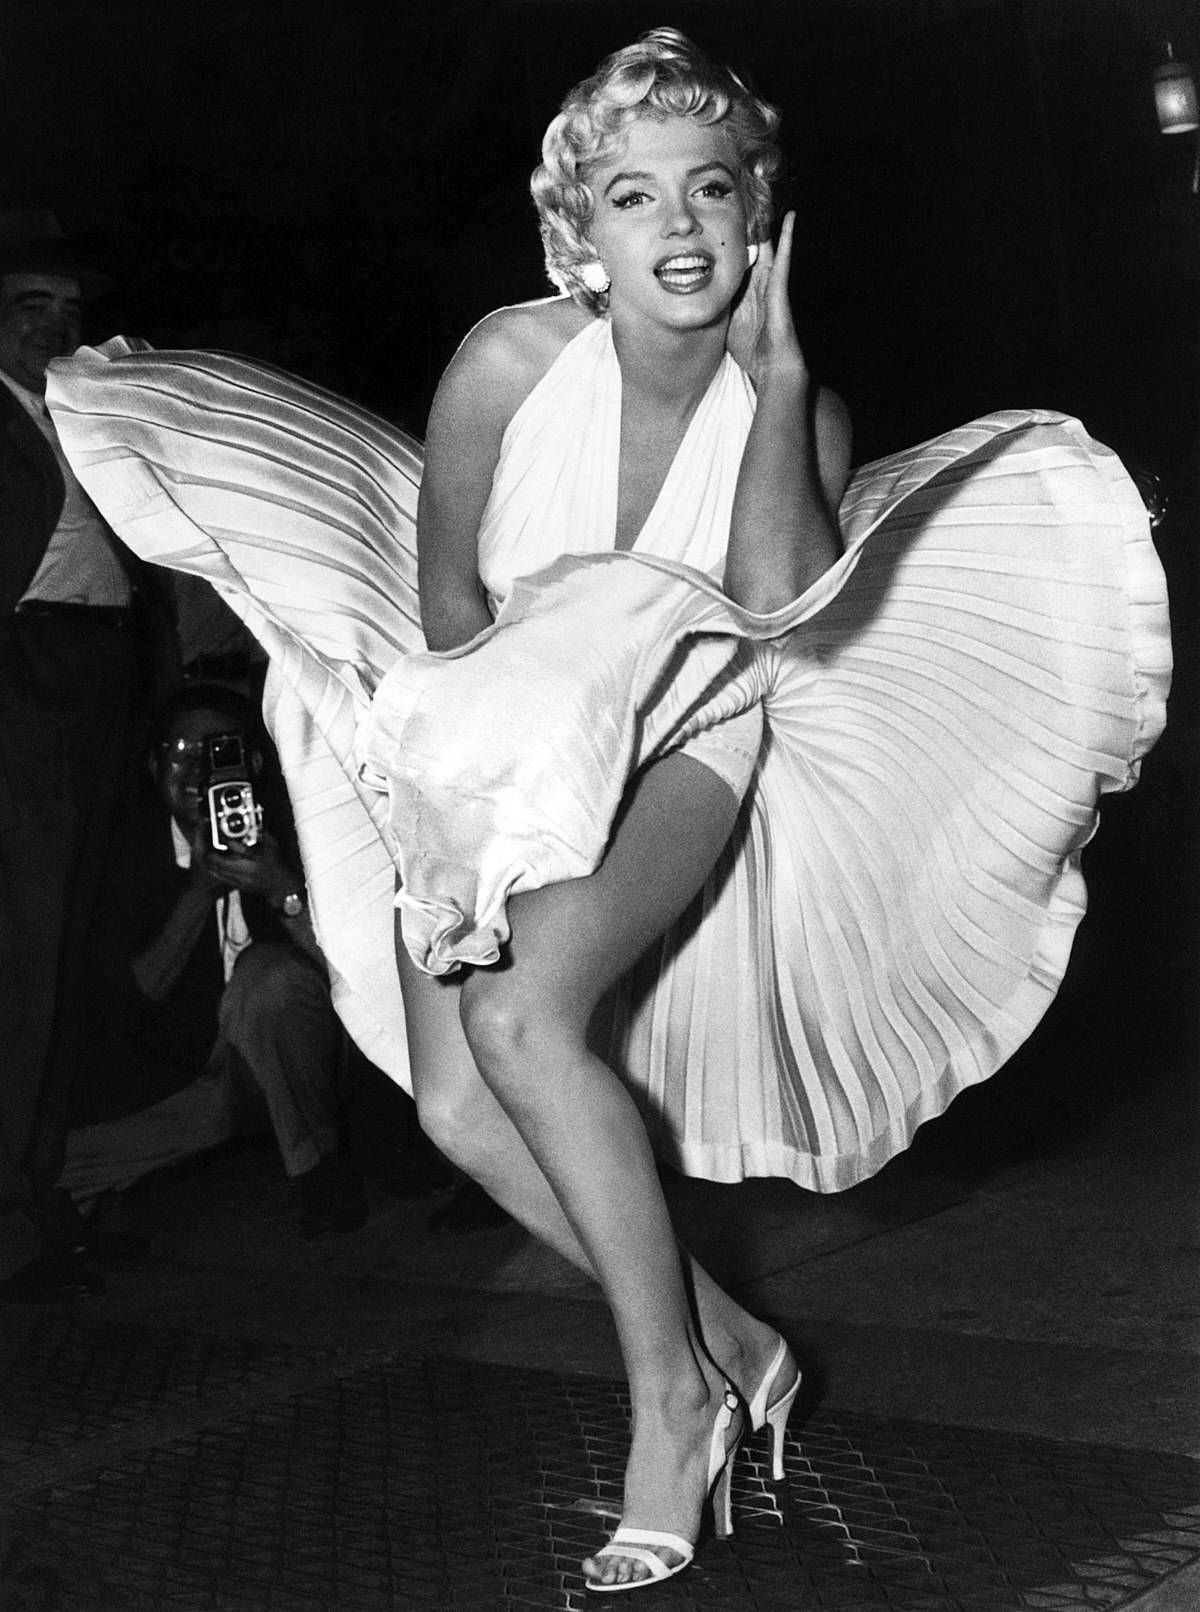 IMAGE(https://upload.wikimedia.org/wikipedia/commons/thumb/8/8d/Marilyn_Monroe_photo_pose_Seven_Year_Itch.jpg/1200px-Marilyn_Monroe_photo_pose_Seven_Year_Itch.jpg)